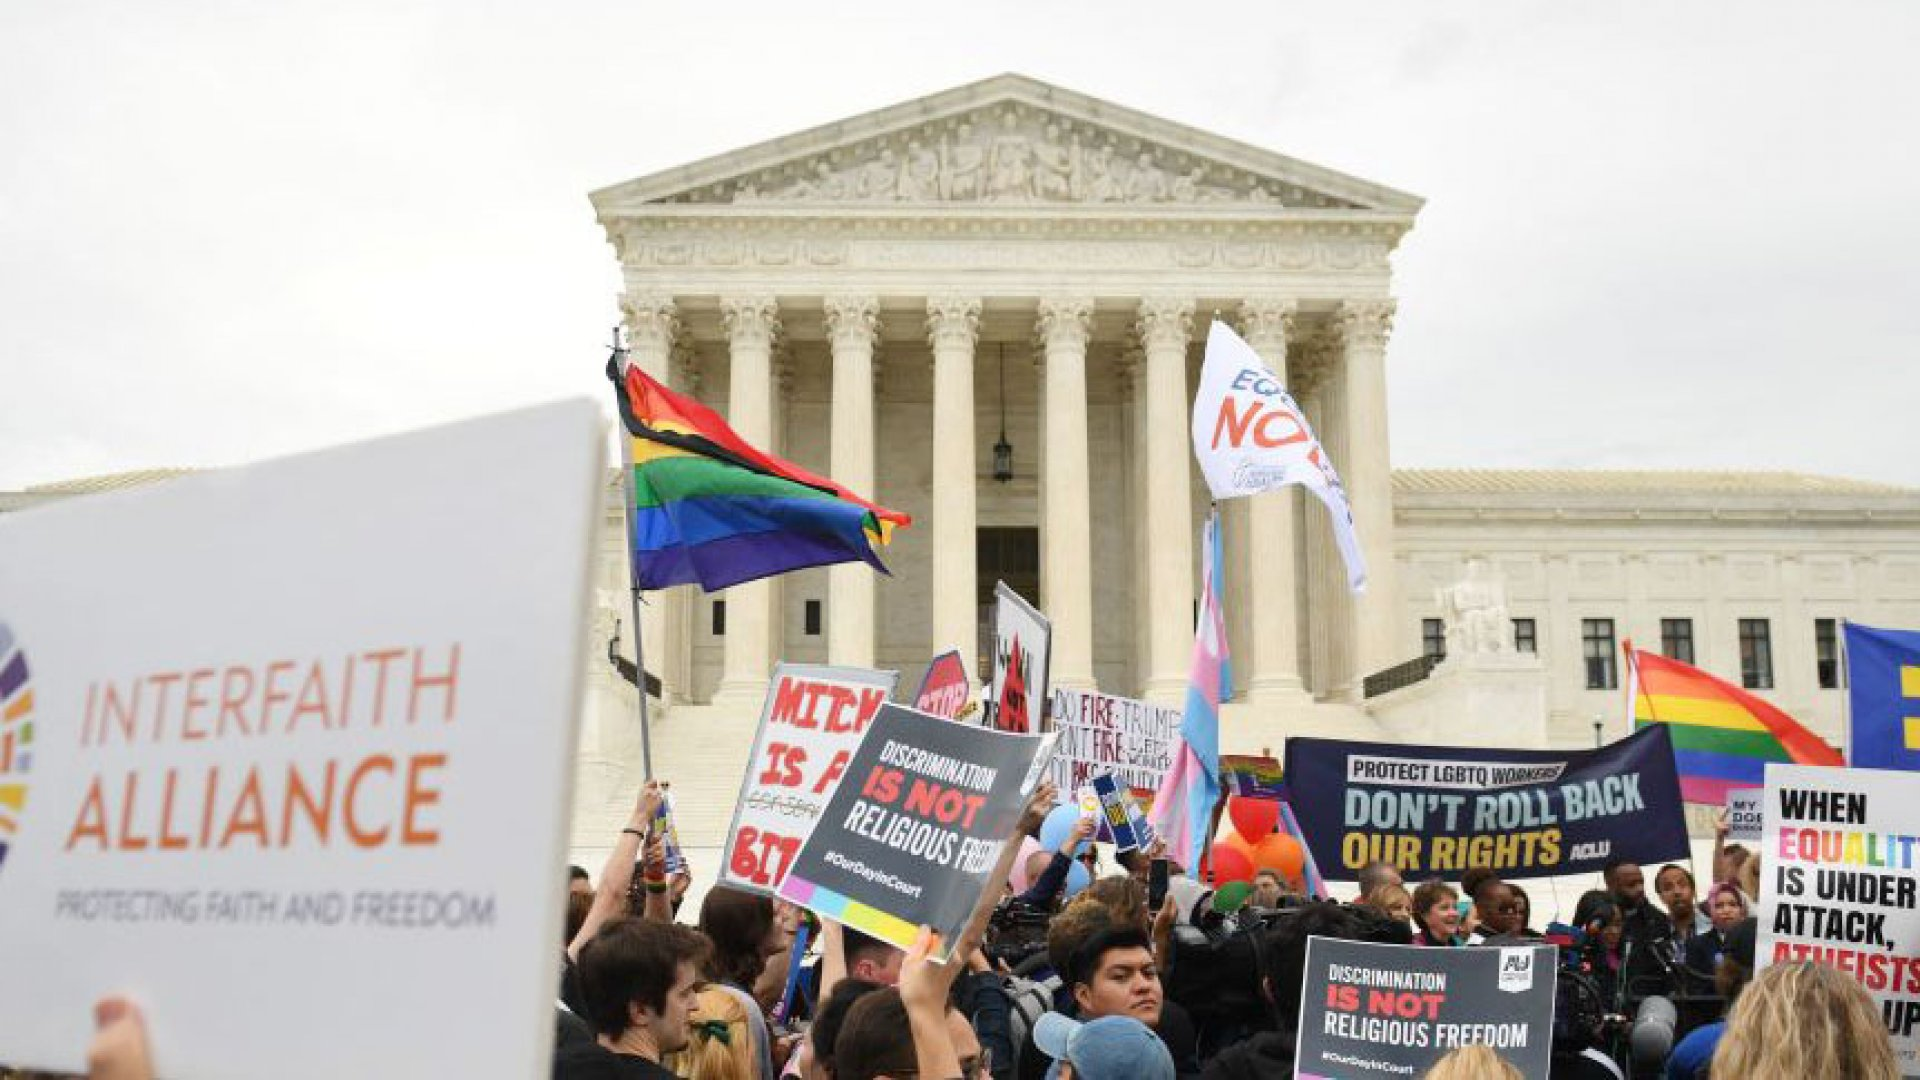 Demonstrators in favor of LGBT rights rally outside the US Supreme Court in Washington, DC